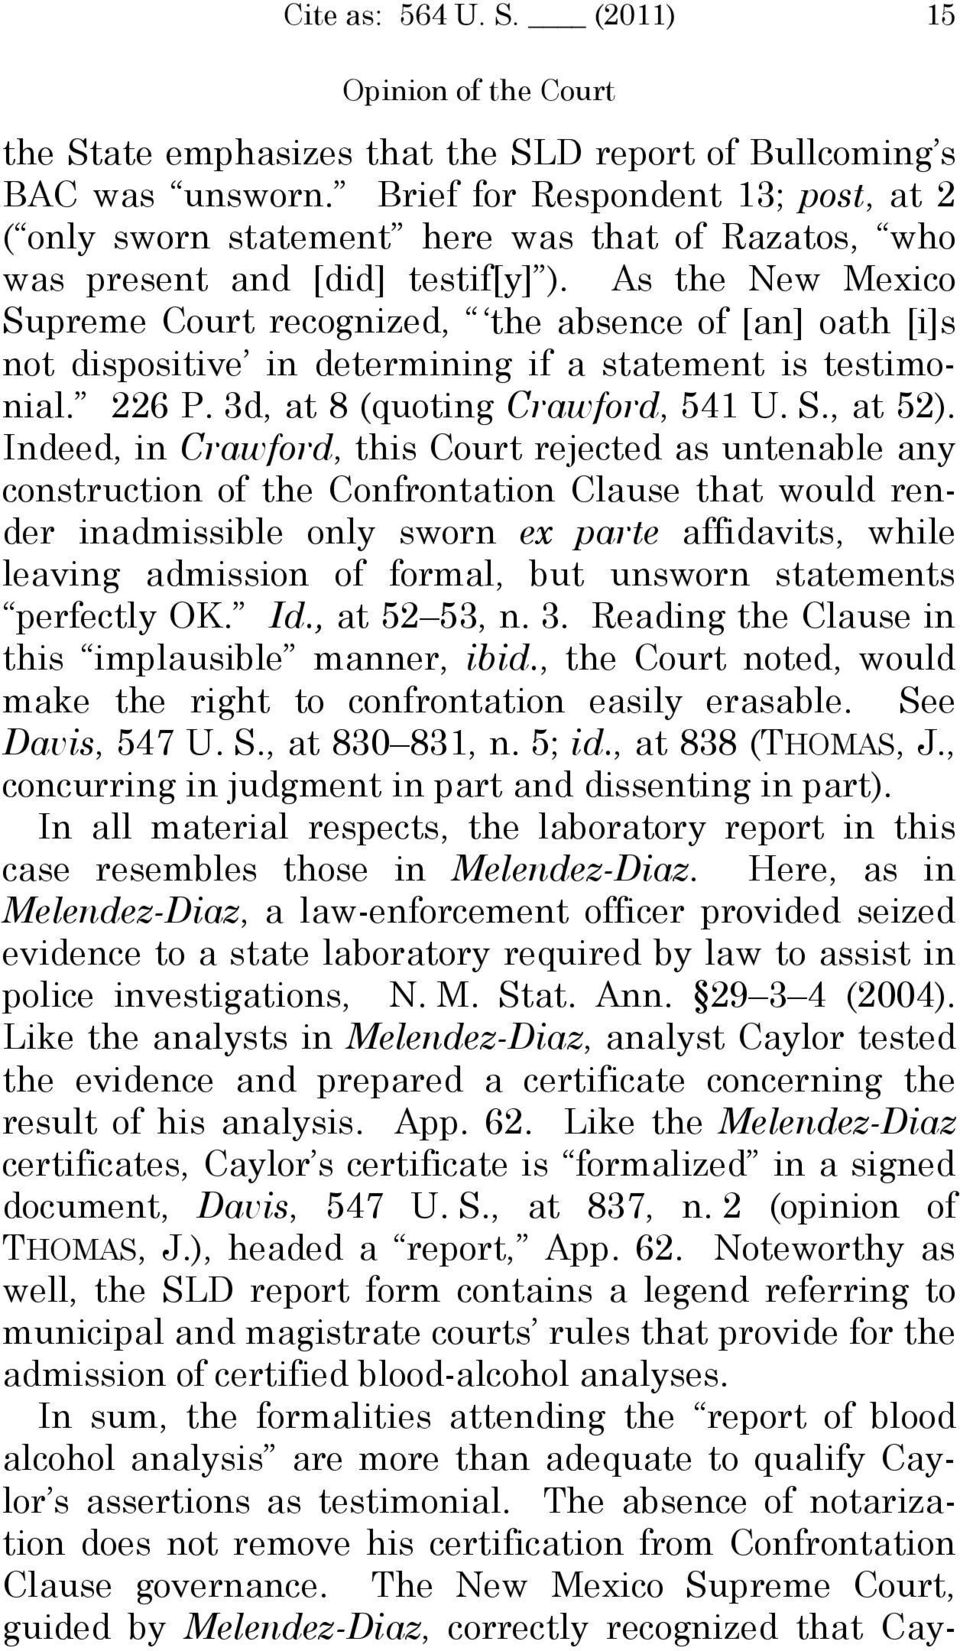 As the New Mexico Supreme Court recognized, the absence of [an] oath [i]s not dispositive in determining if a statement is testimonial. 226 P. 3d, at 8 (quoting Crawford, 541 U. S., at 52).